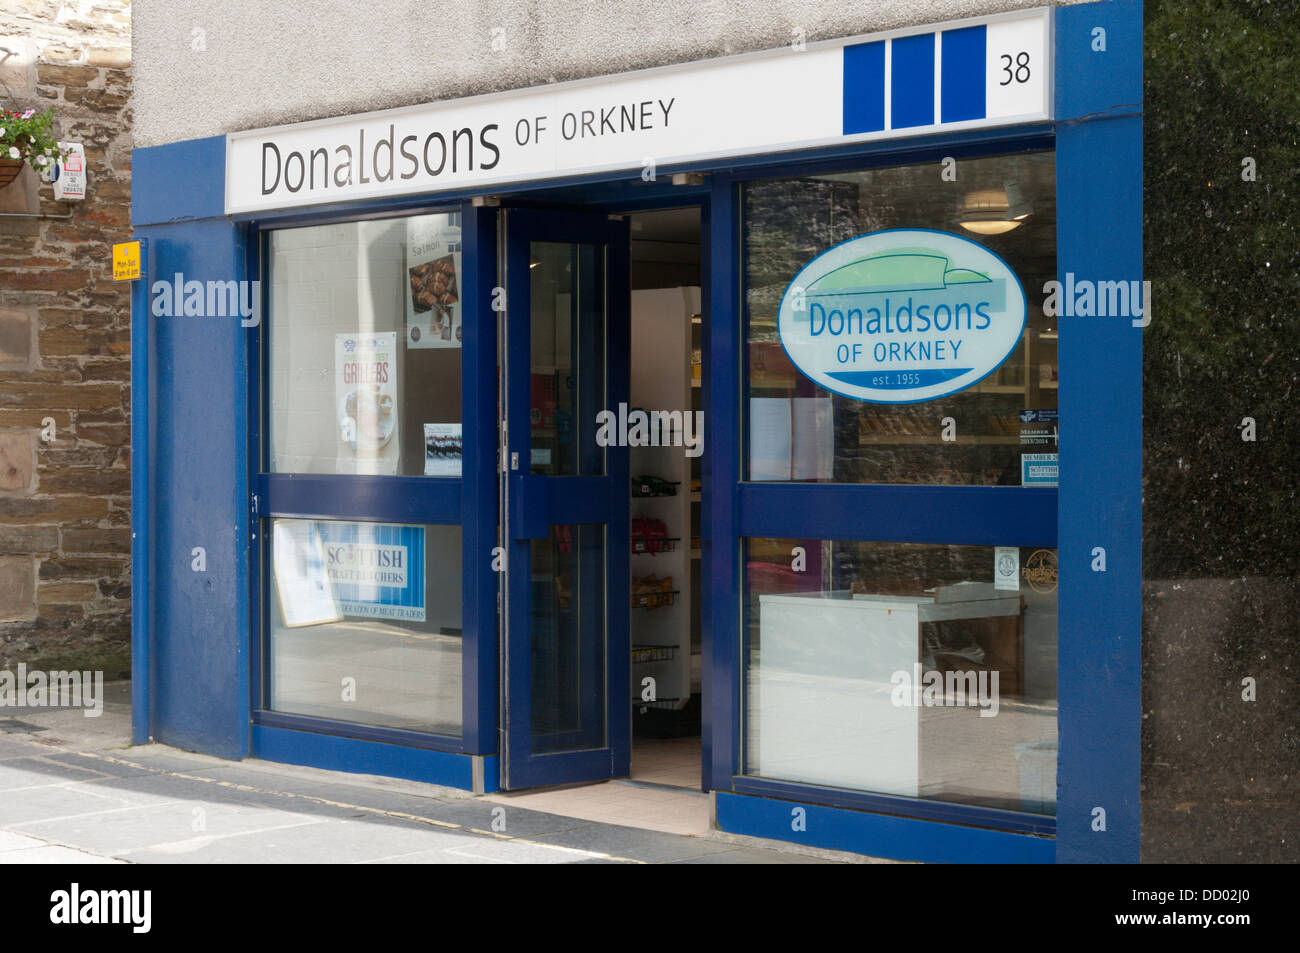 Donaldsons of Orkney in Kirkwall. - Stock Image